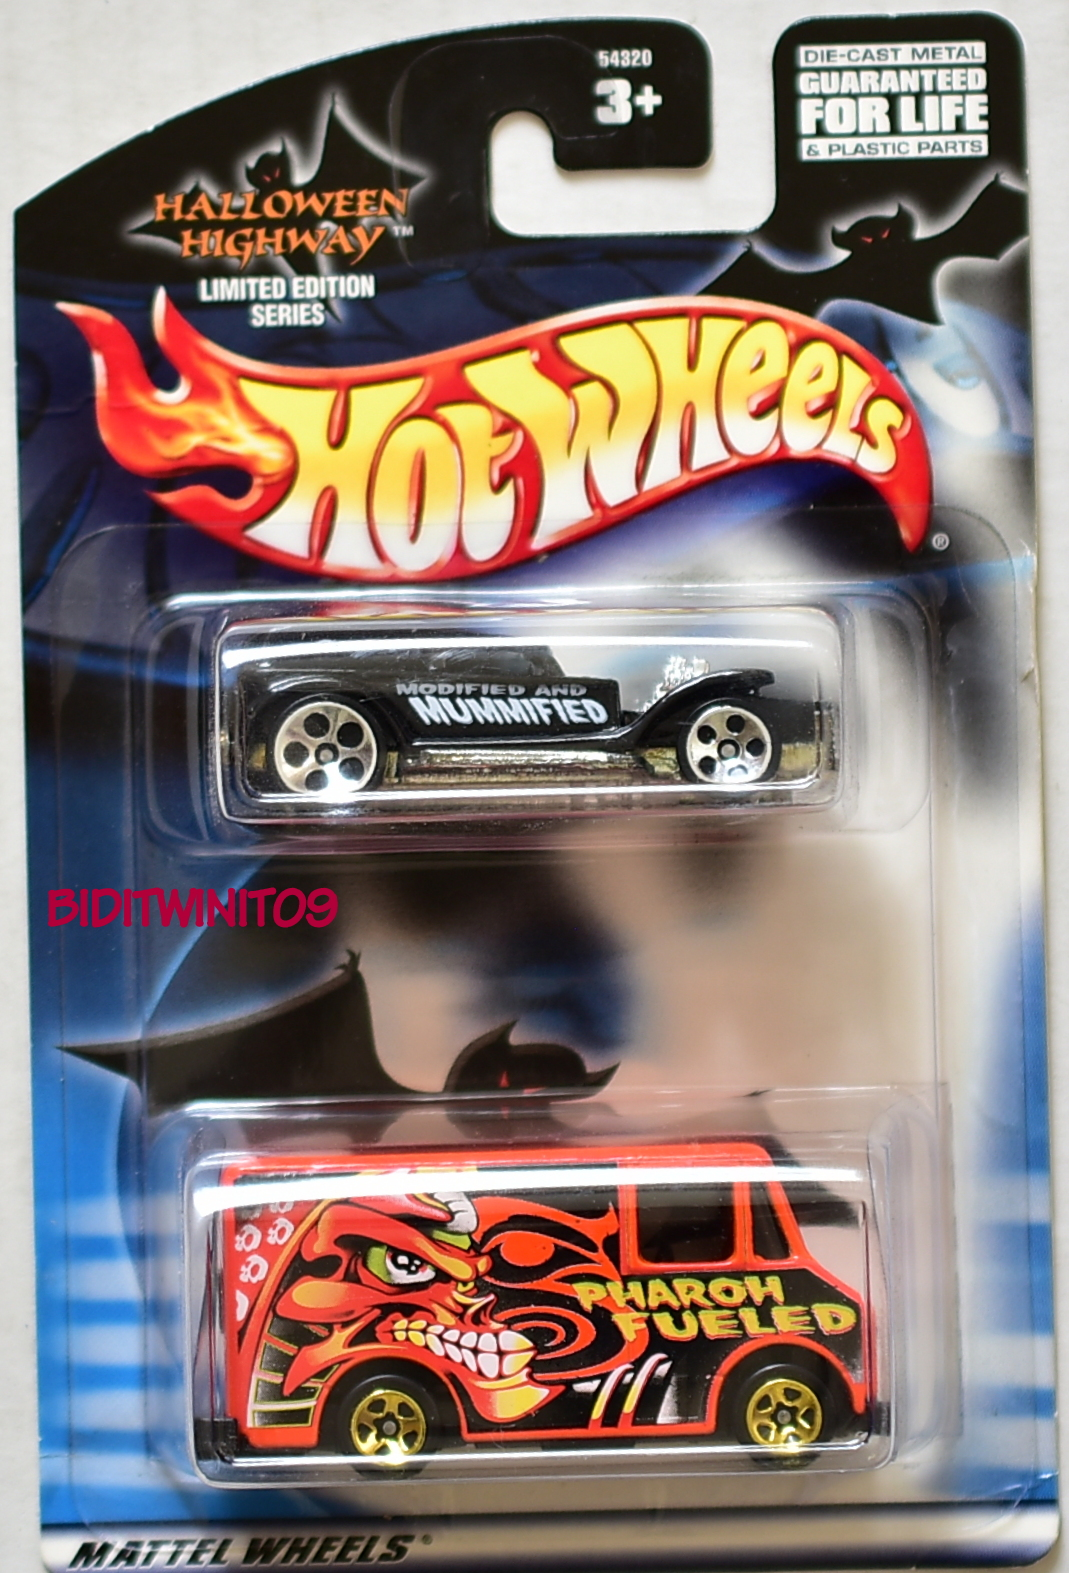 HOT WHEELS HALLOWEEN COMBAT MEDIC - DEMON LIMITED EDITION 2 CAR PACK